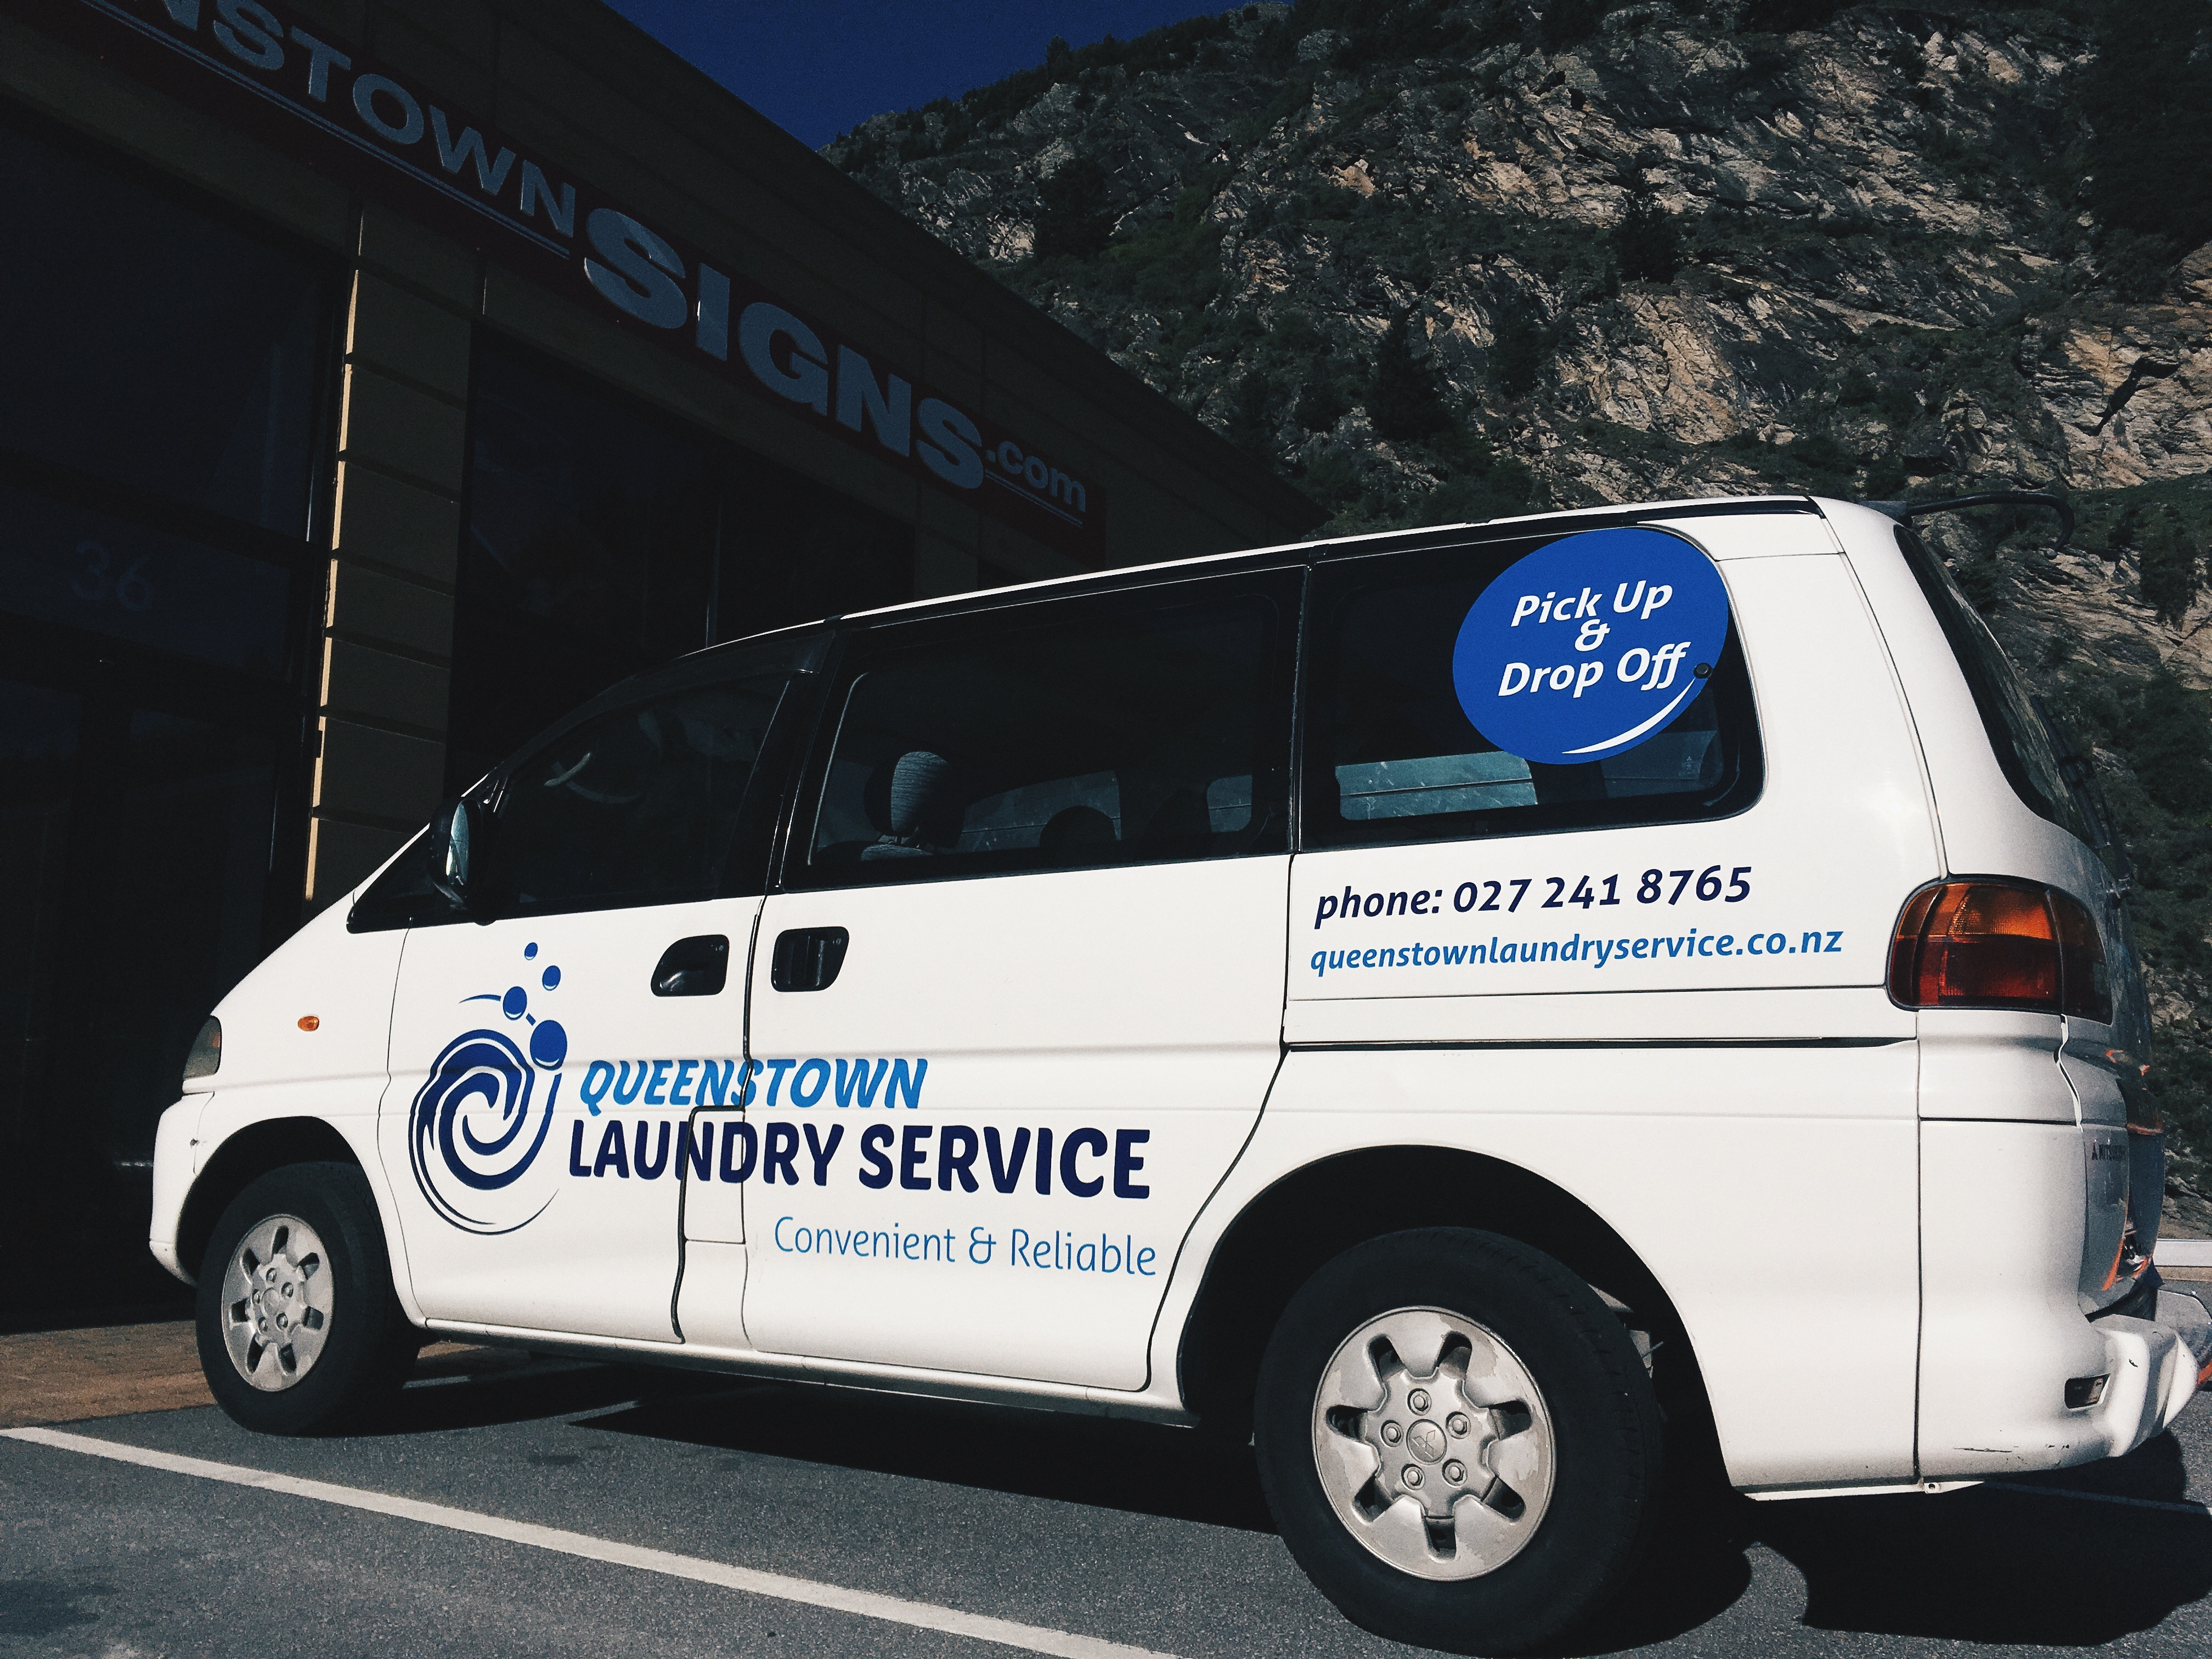 Queenstown Laundry Service